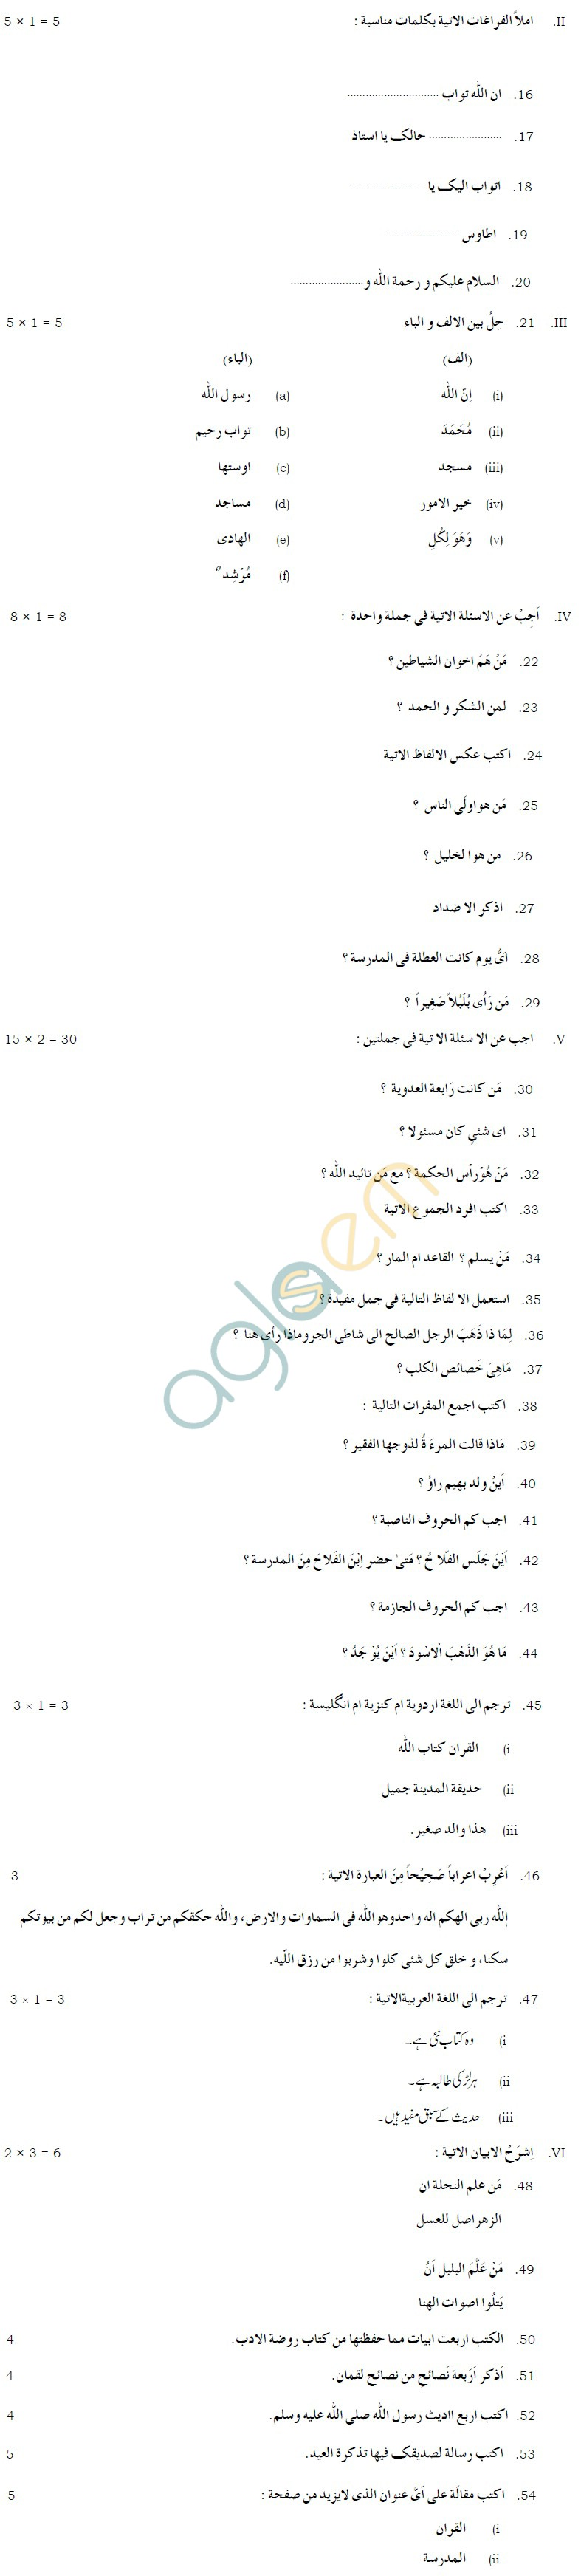 Karnataka sslc solved question paper of arabic iii 2017 2016 2015 karnataka sslc solved question paper june 2014 arabic iii malvernweather Image collections